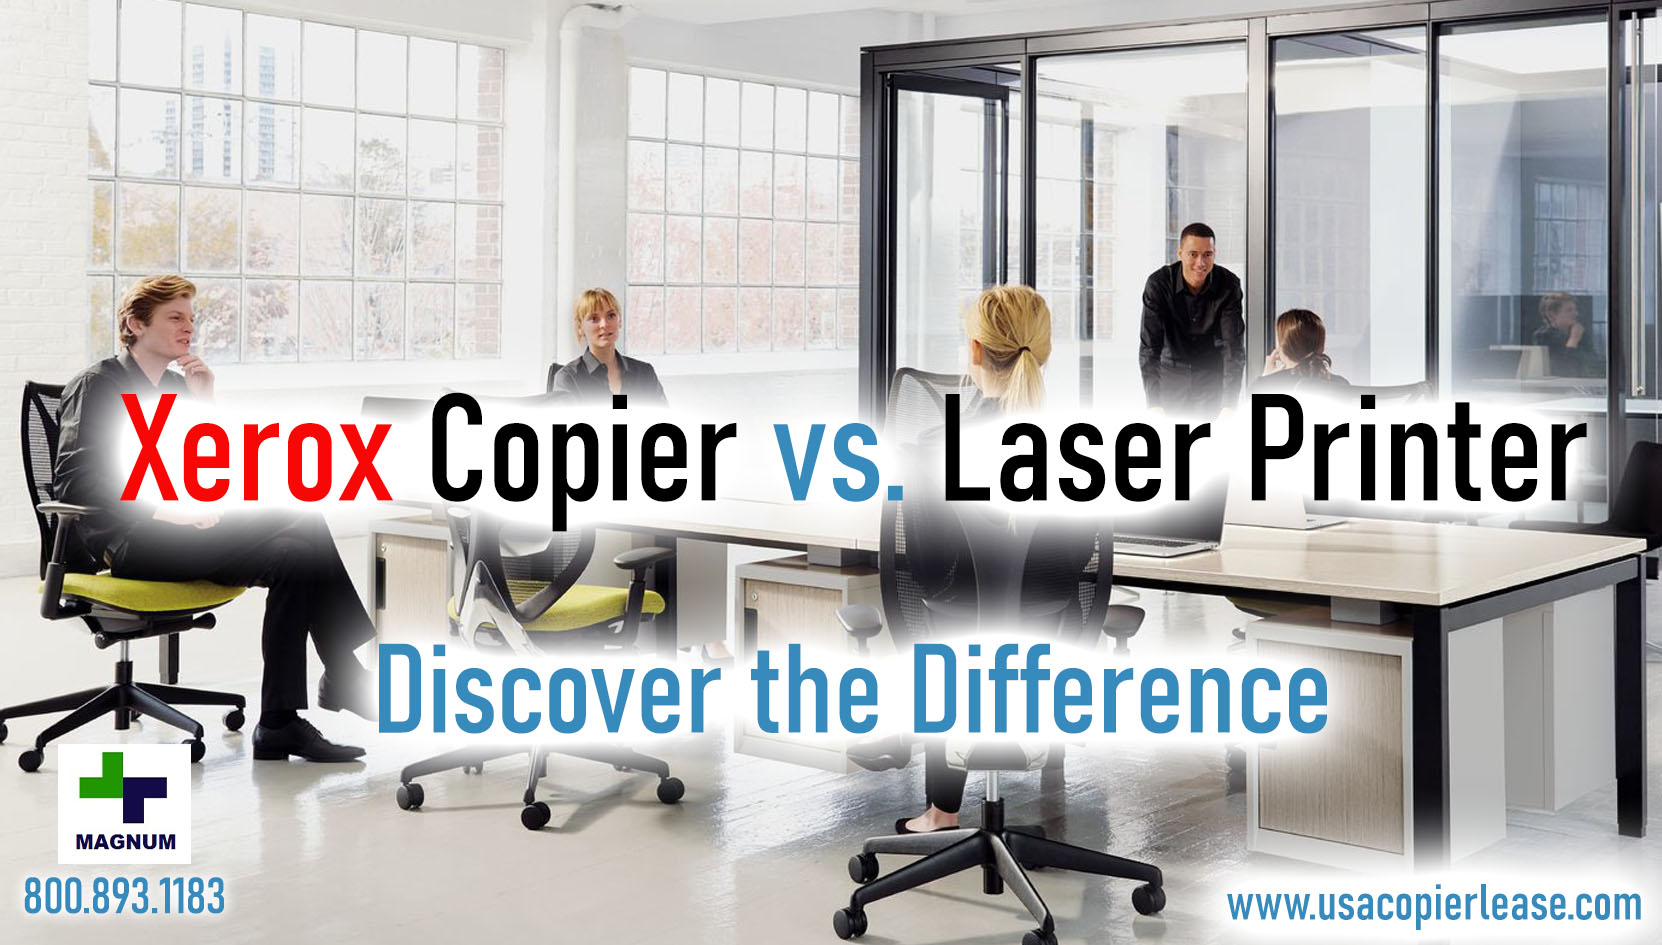 How is a Xerox Copier Different From a Laser Printer?